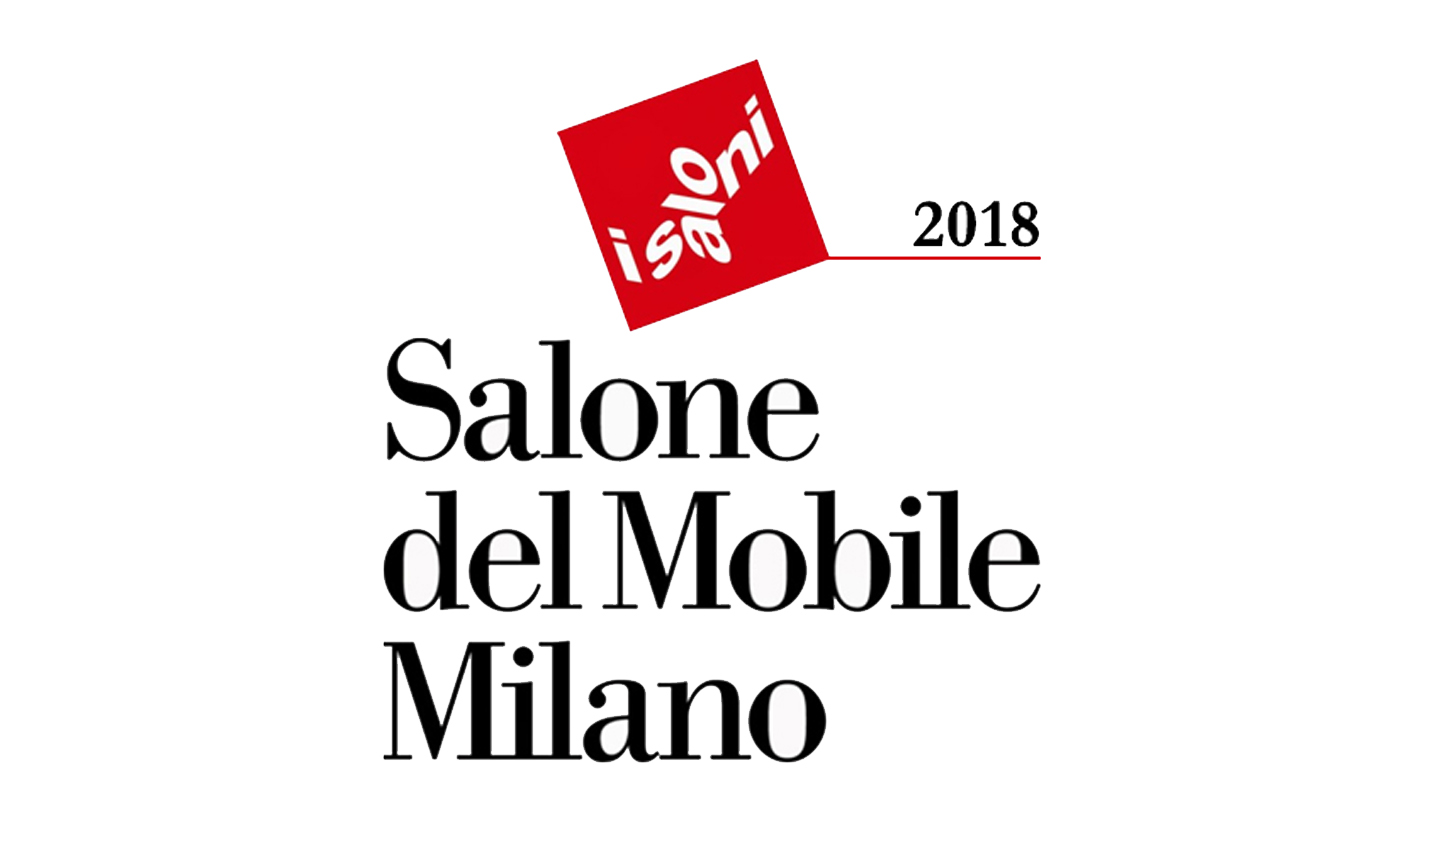 Meet The Winners of the CovetED Awards Presented at iSaloni 2018 Light + Building 2018 LUXXU's Highlights From Light + Building 2018 Meet The Winners of the CovetED Awards Presented at iSaloni 2018 01 Light + Building 2018 LUXXU's Highlights From Light + Building 2018 Meet The Winners of the CovetED Awards Presented at iSaloni 2018 01